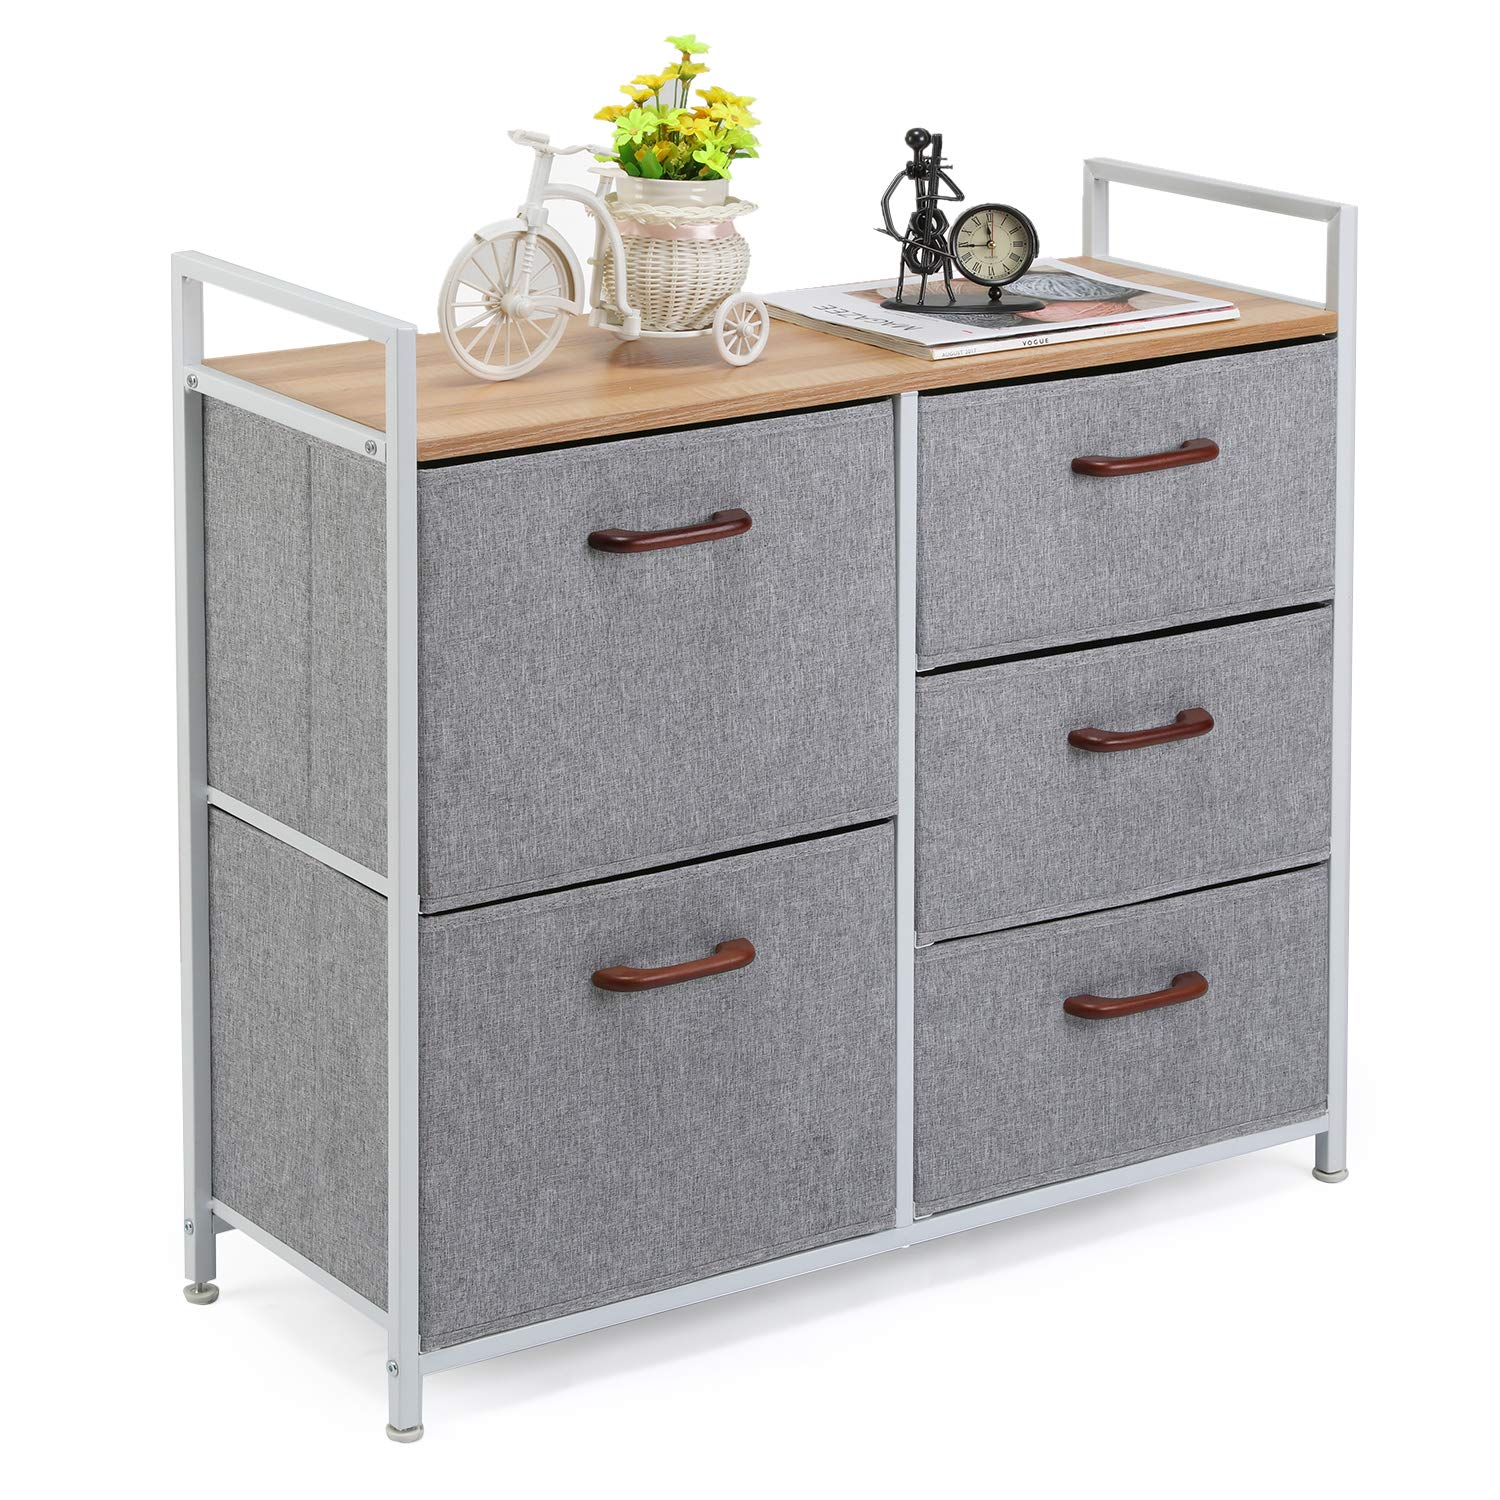 MaidMAX Storage Cube Dresser Home Dresser Storage Tower Constructed by Painted Steel, Wooden Top and 5 Foldable Cloth Storage Cubes, Gray by MaidMAX